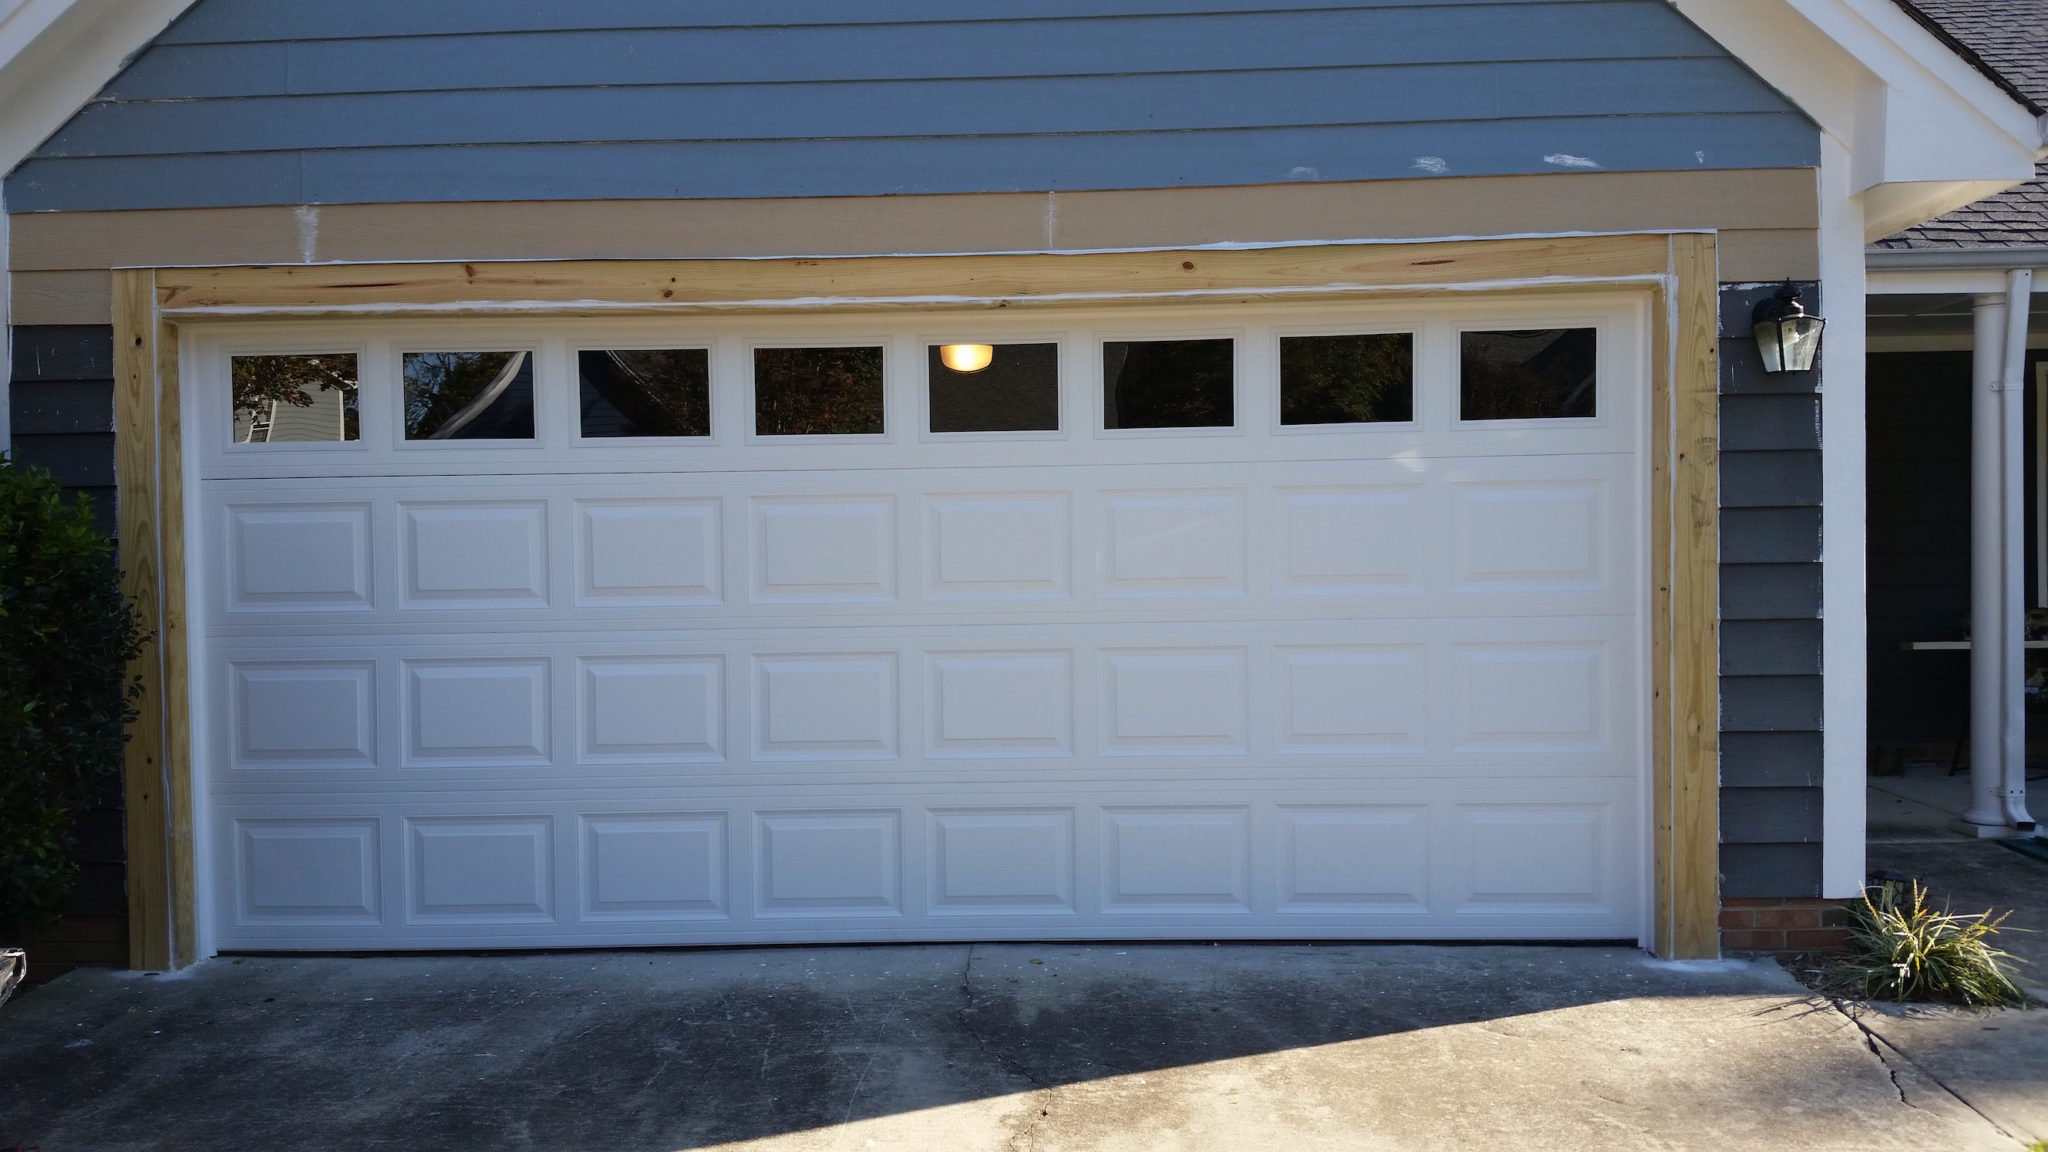 South Charlotte Residential Garage Door Framing & South Charlotte Residential Garage Door Framing Repair Installation